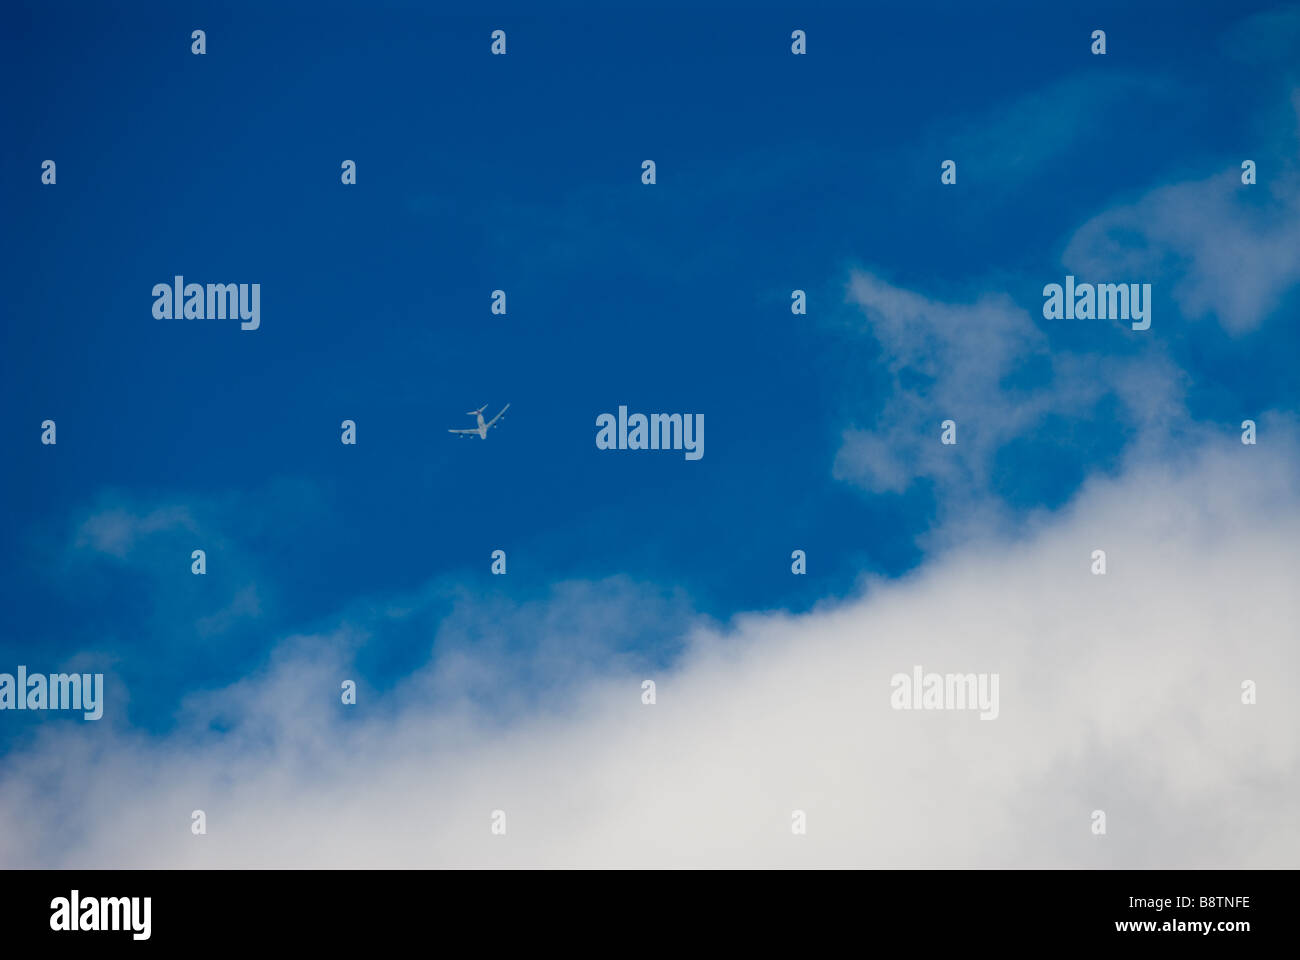 photograph of passenger jet aircraft against blue sky - Stock Image